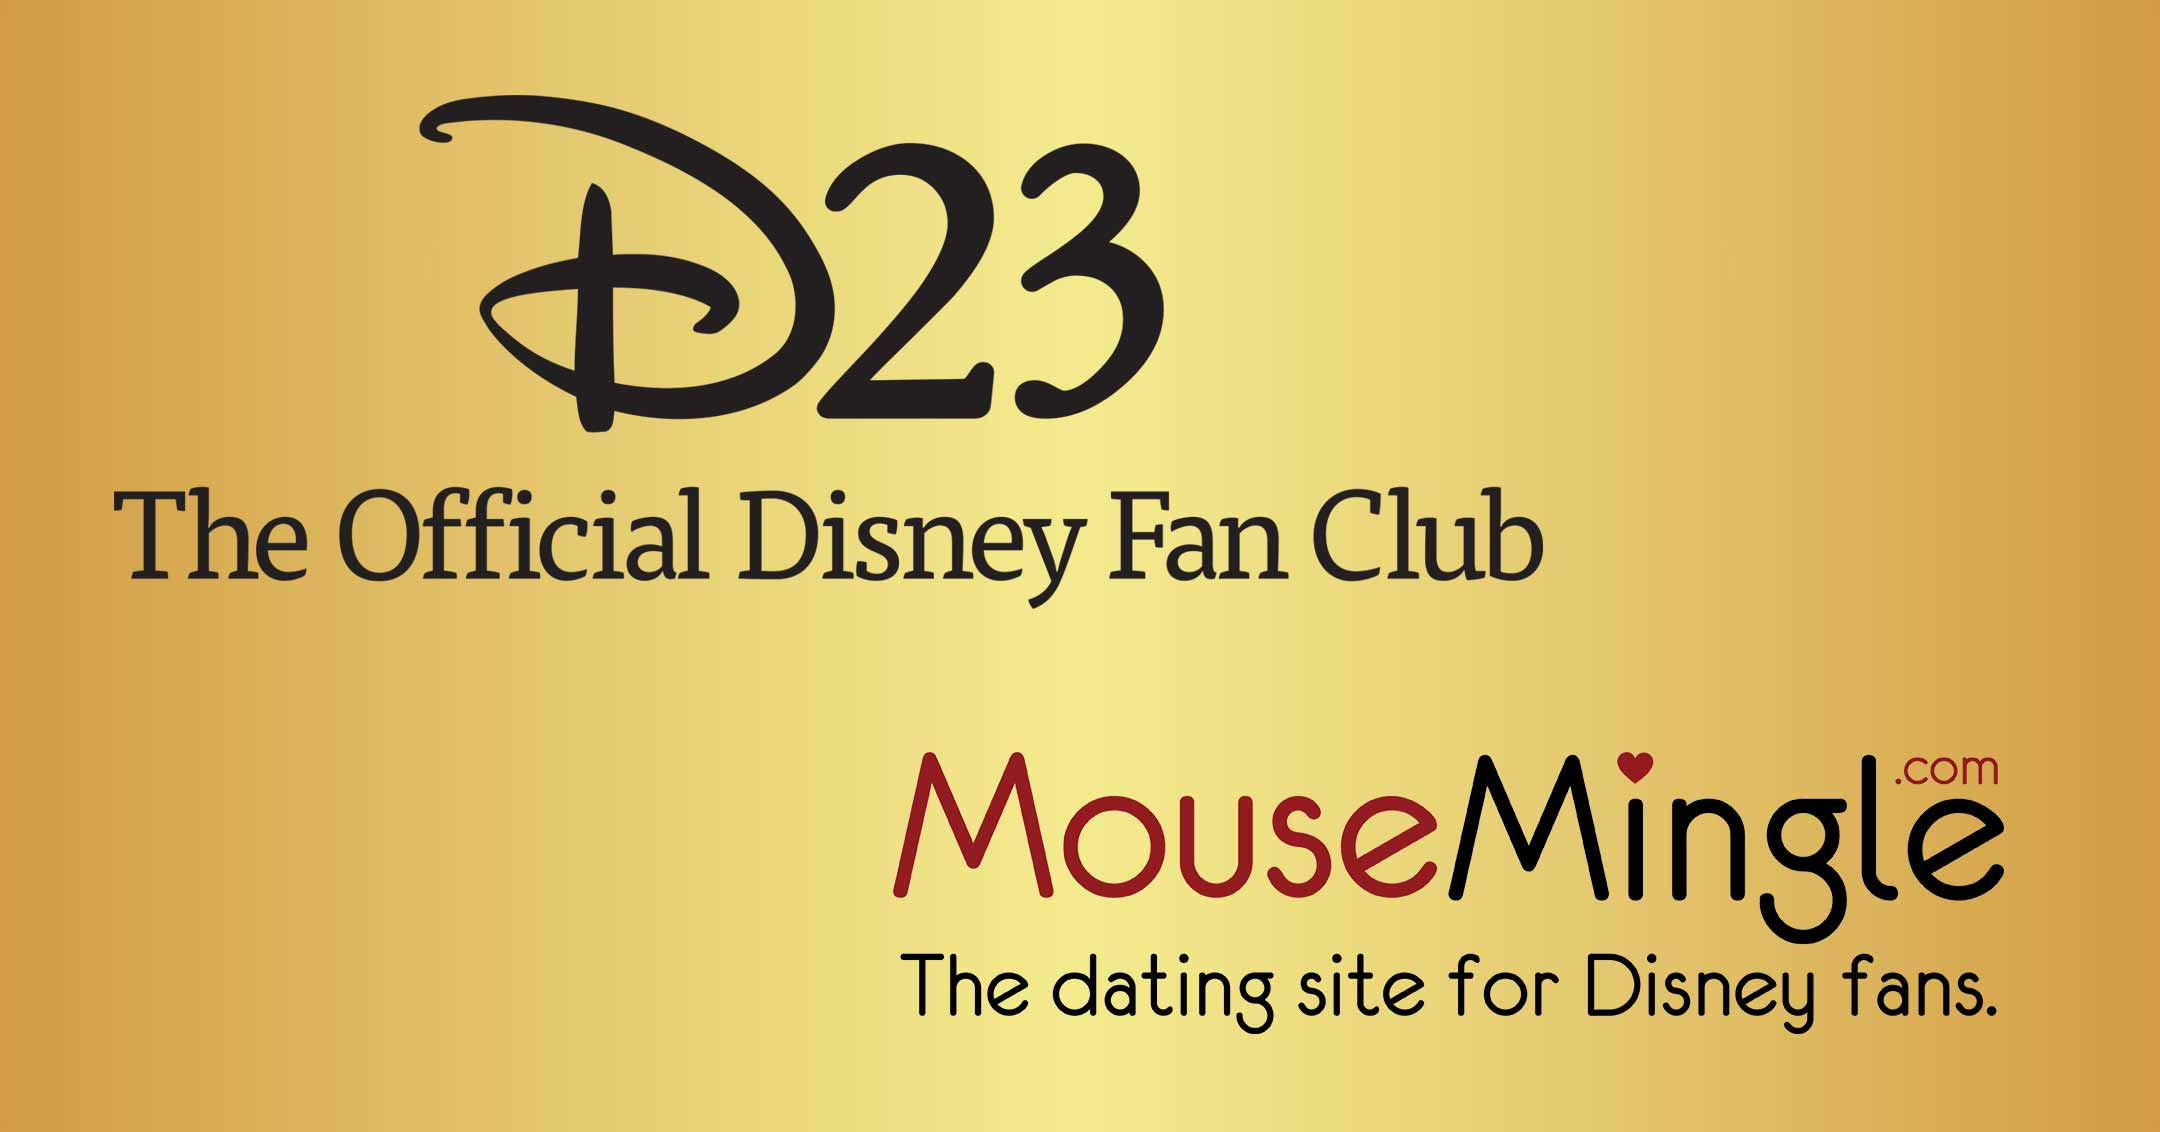 Where's the MouseMingle Booth at D23?